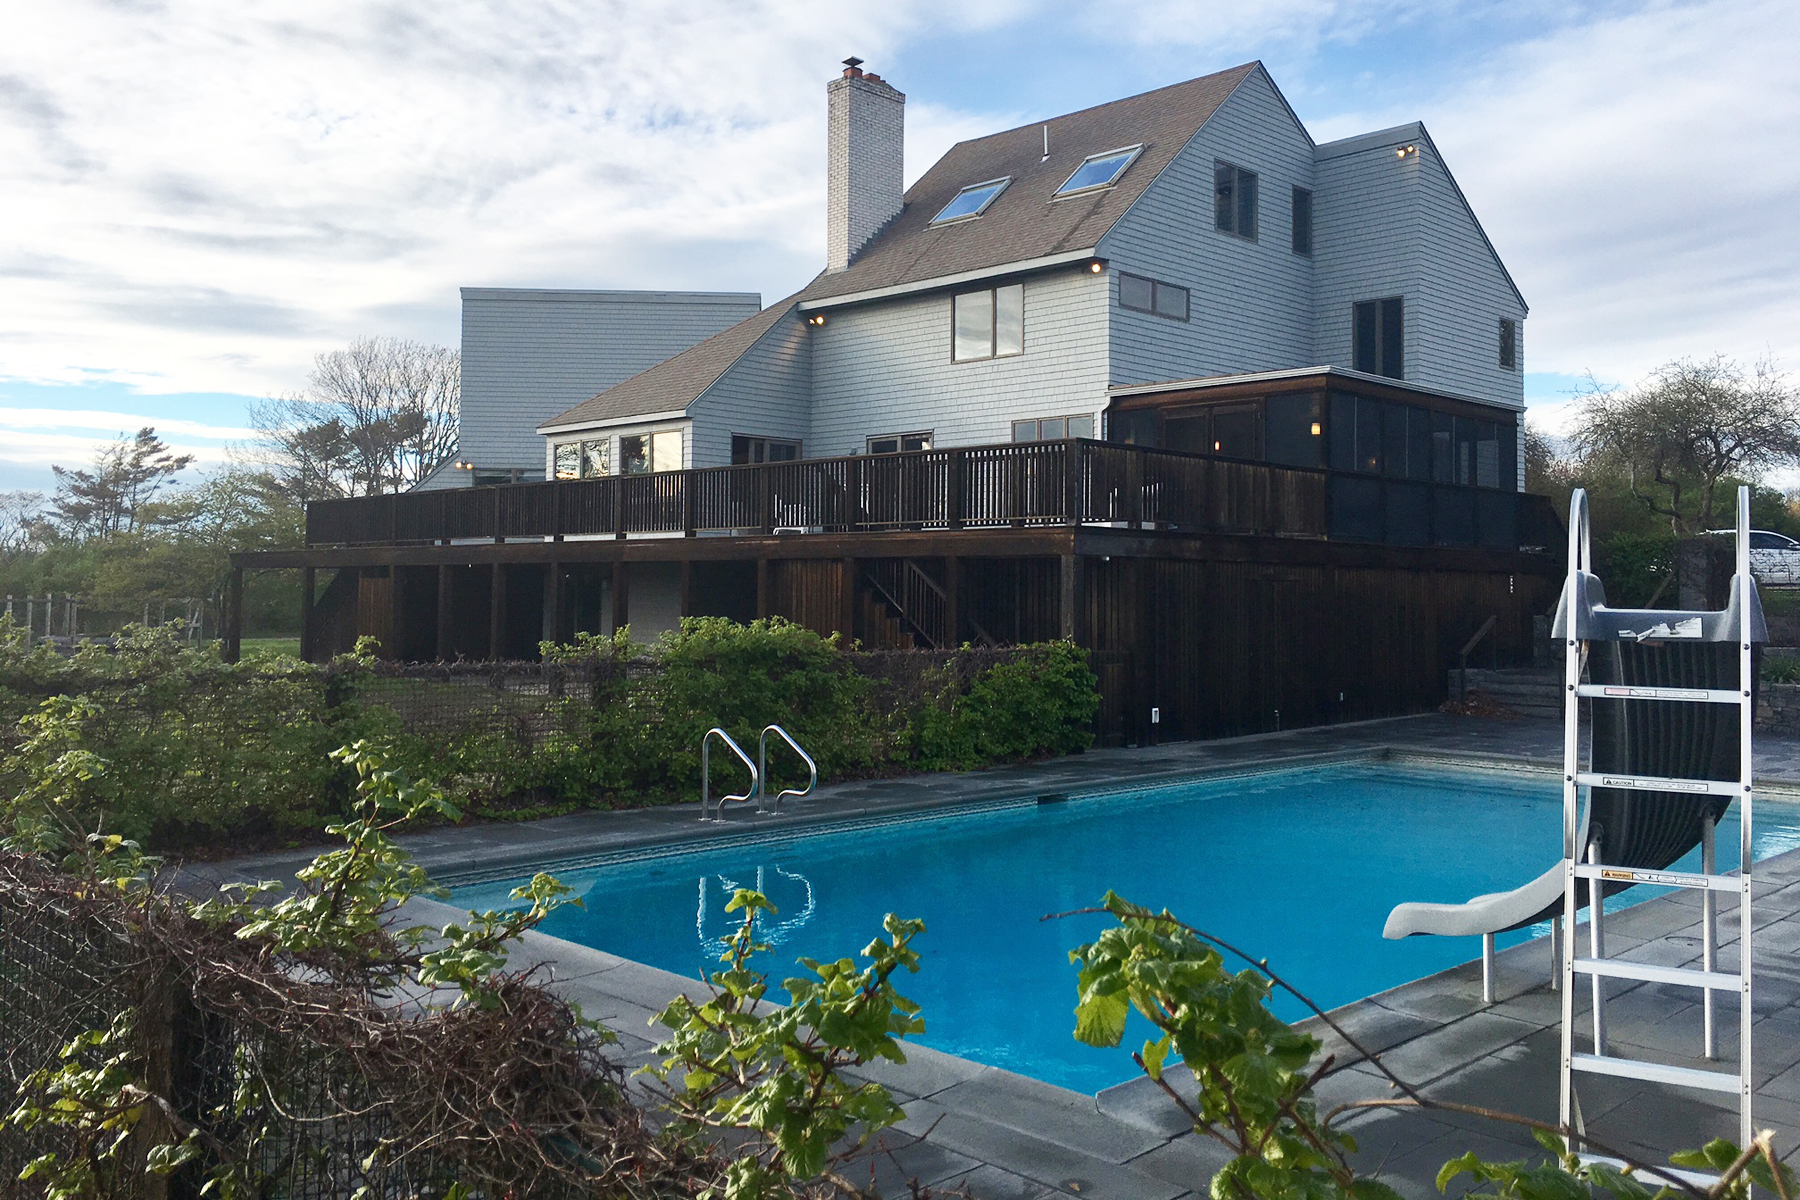 Single Family Home for Sale at 18 Angell Point Road Cape Elizabeth, Maine 04107 United States